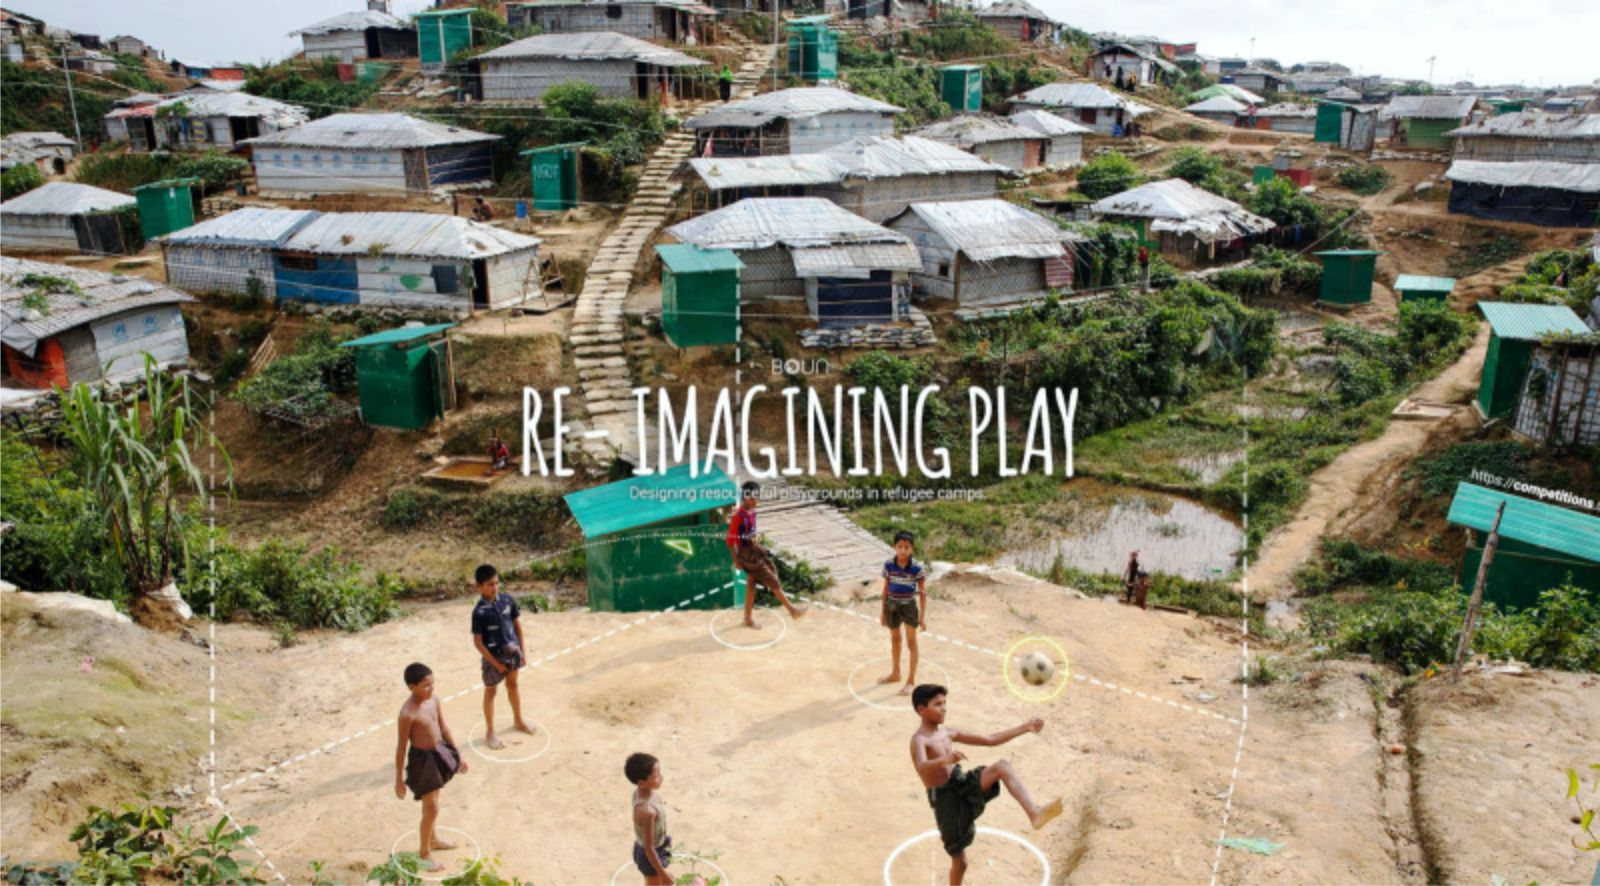 RE- IMAGINING PLAY